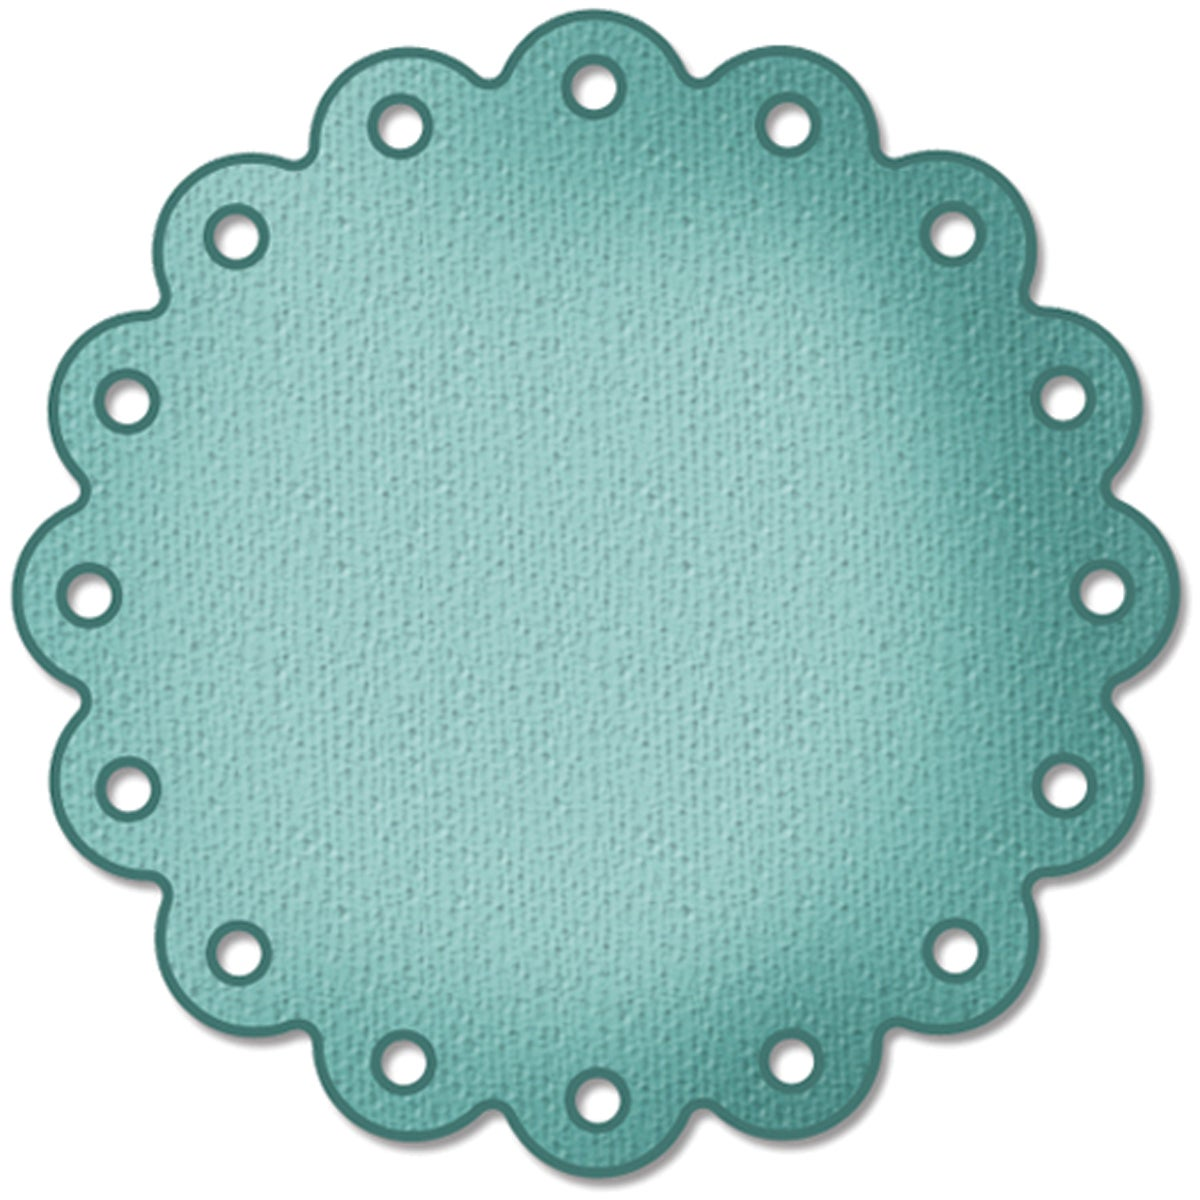 CottageCutz Mini Die 1.75X1.75-Doily Made Easy